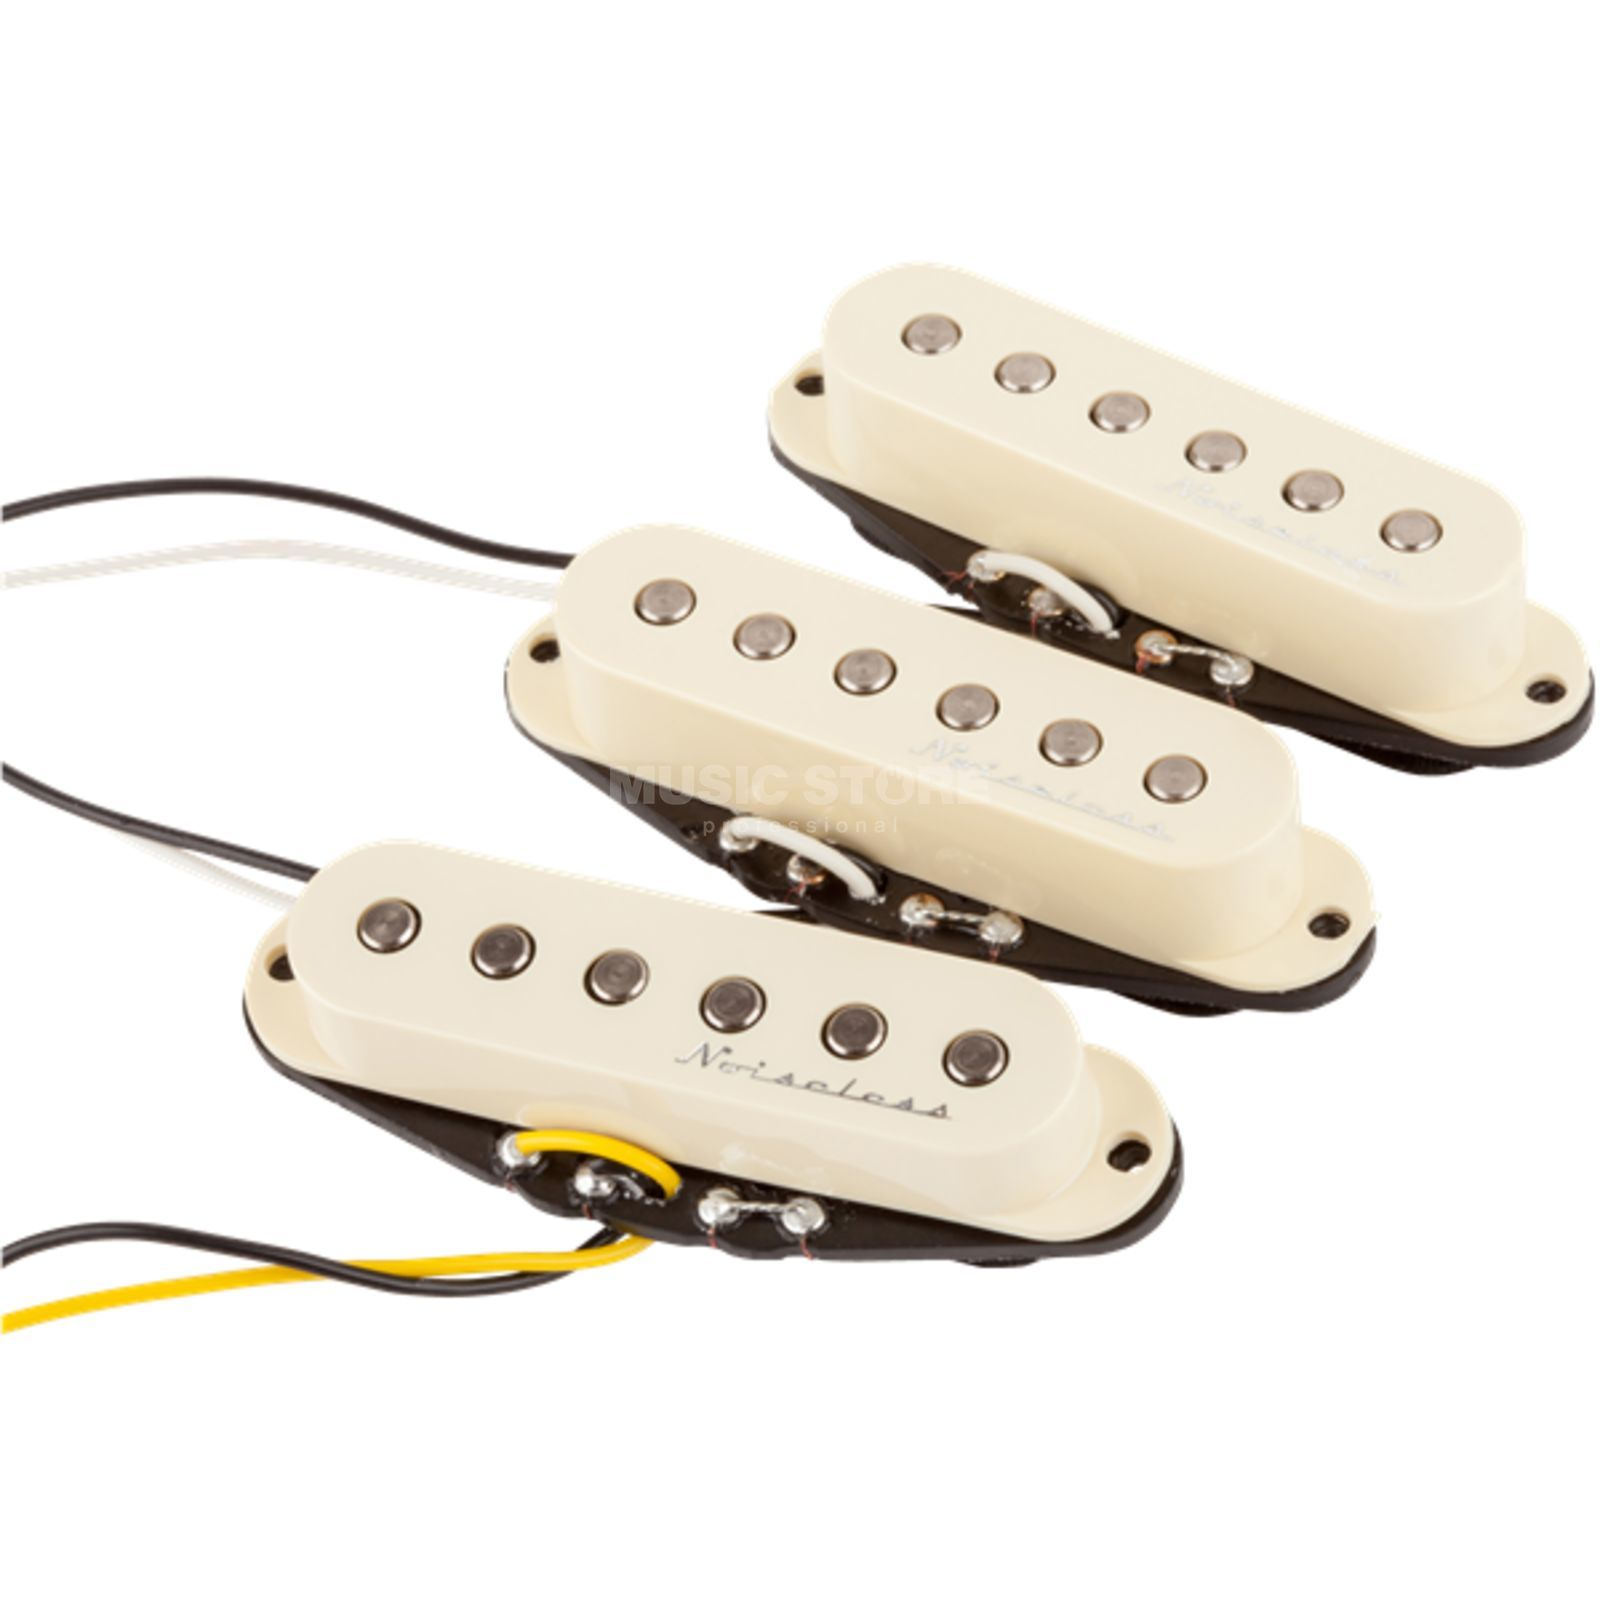 Fender Hot Noiseless Strat Set Jeff Beck Style White Covers Produktbild